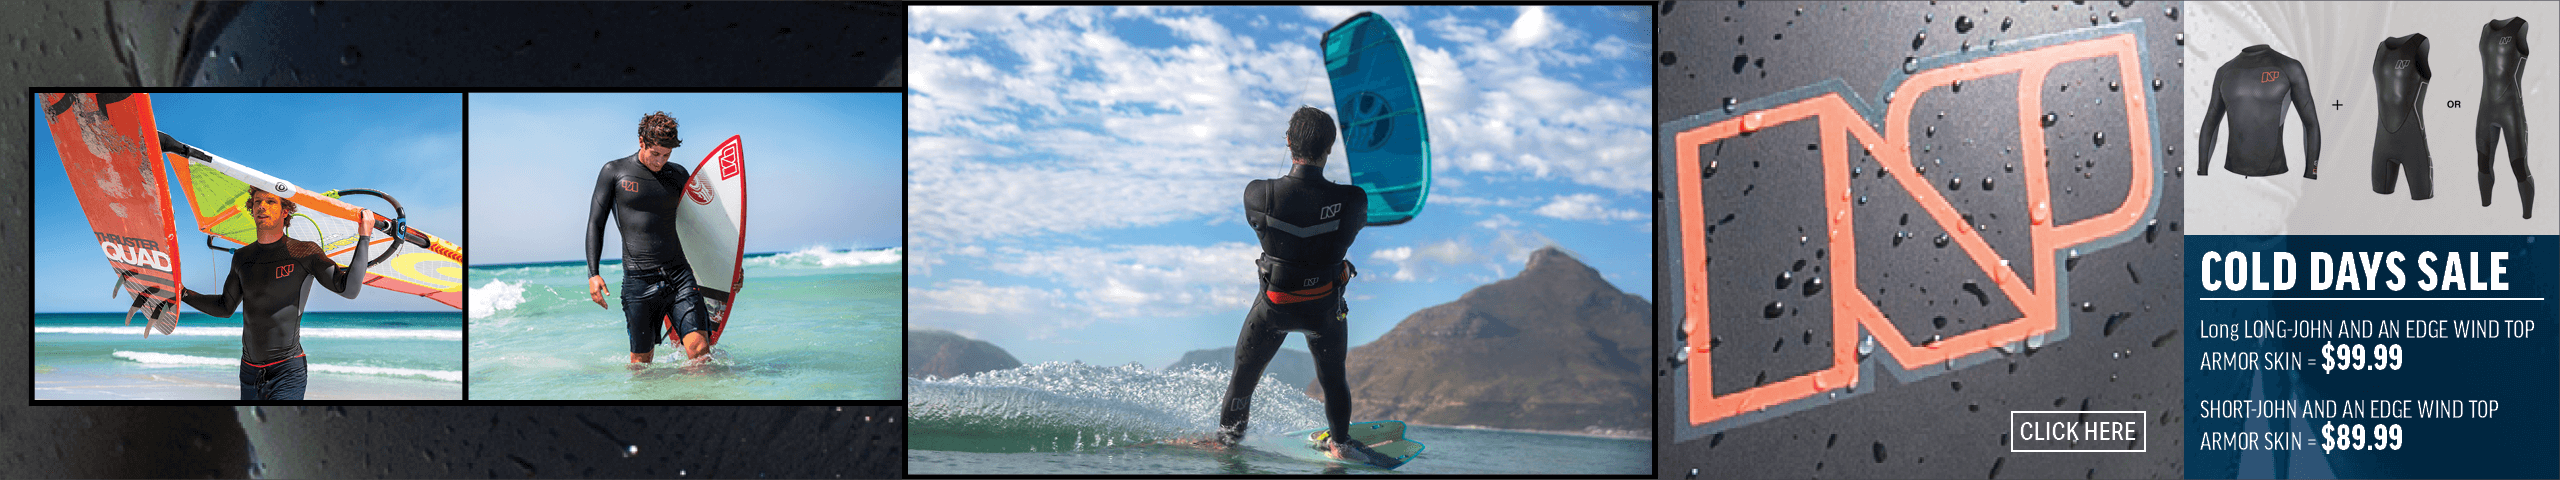 Wetsuits, Rash Guards on Sale